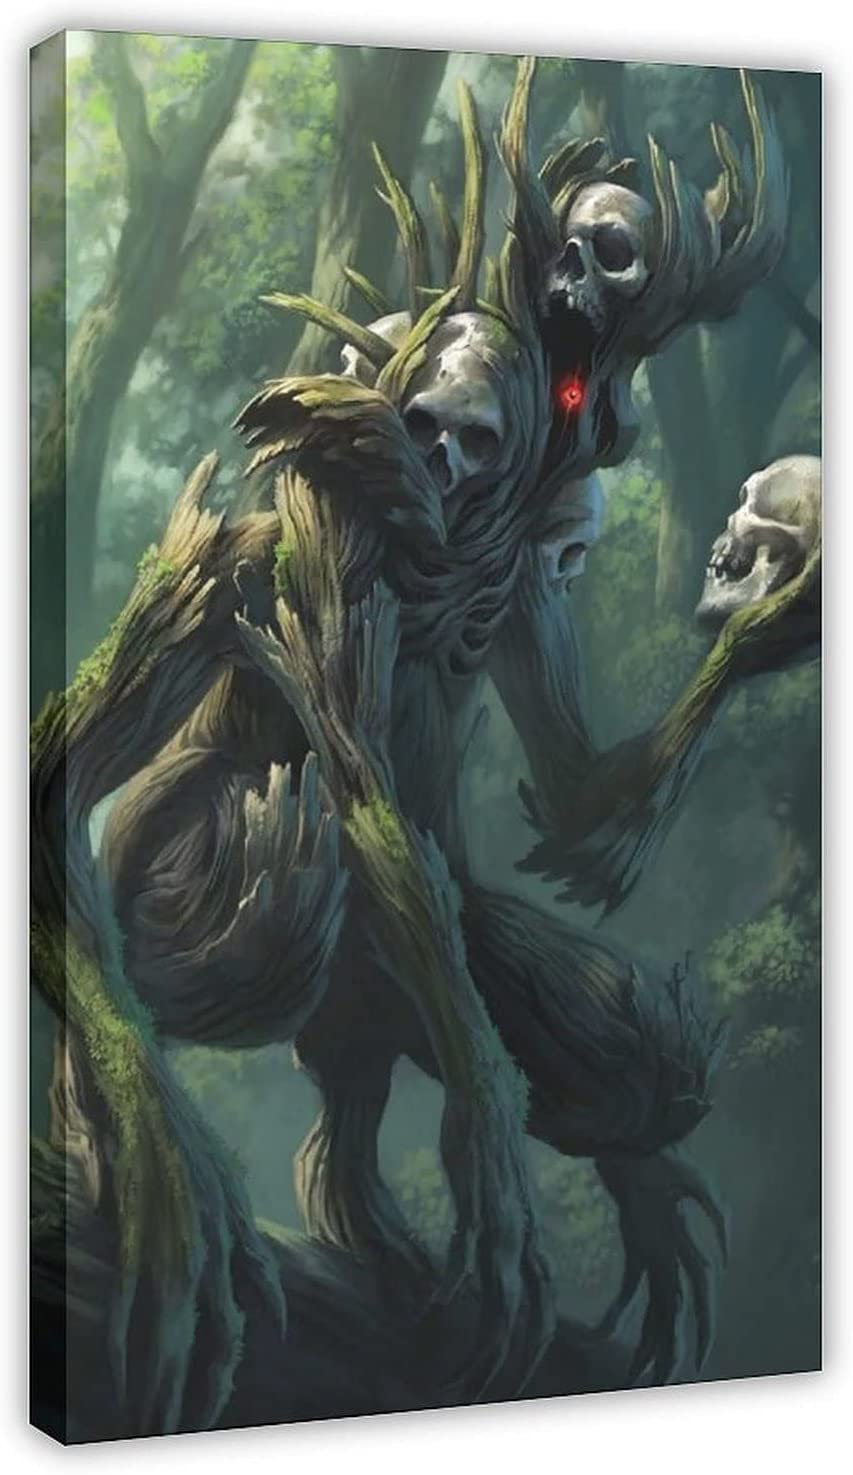 Forest Our shop OFFers the best service Beasts 9 Canvas Online limited product Poster Wall Paint Picture Decor Print Art